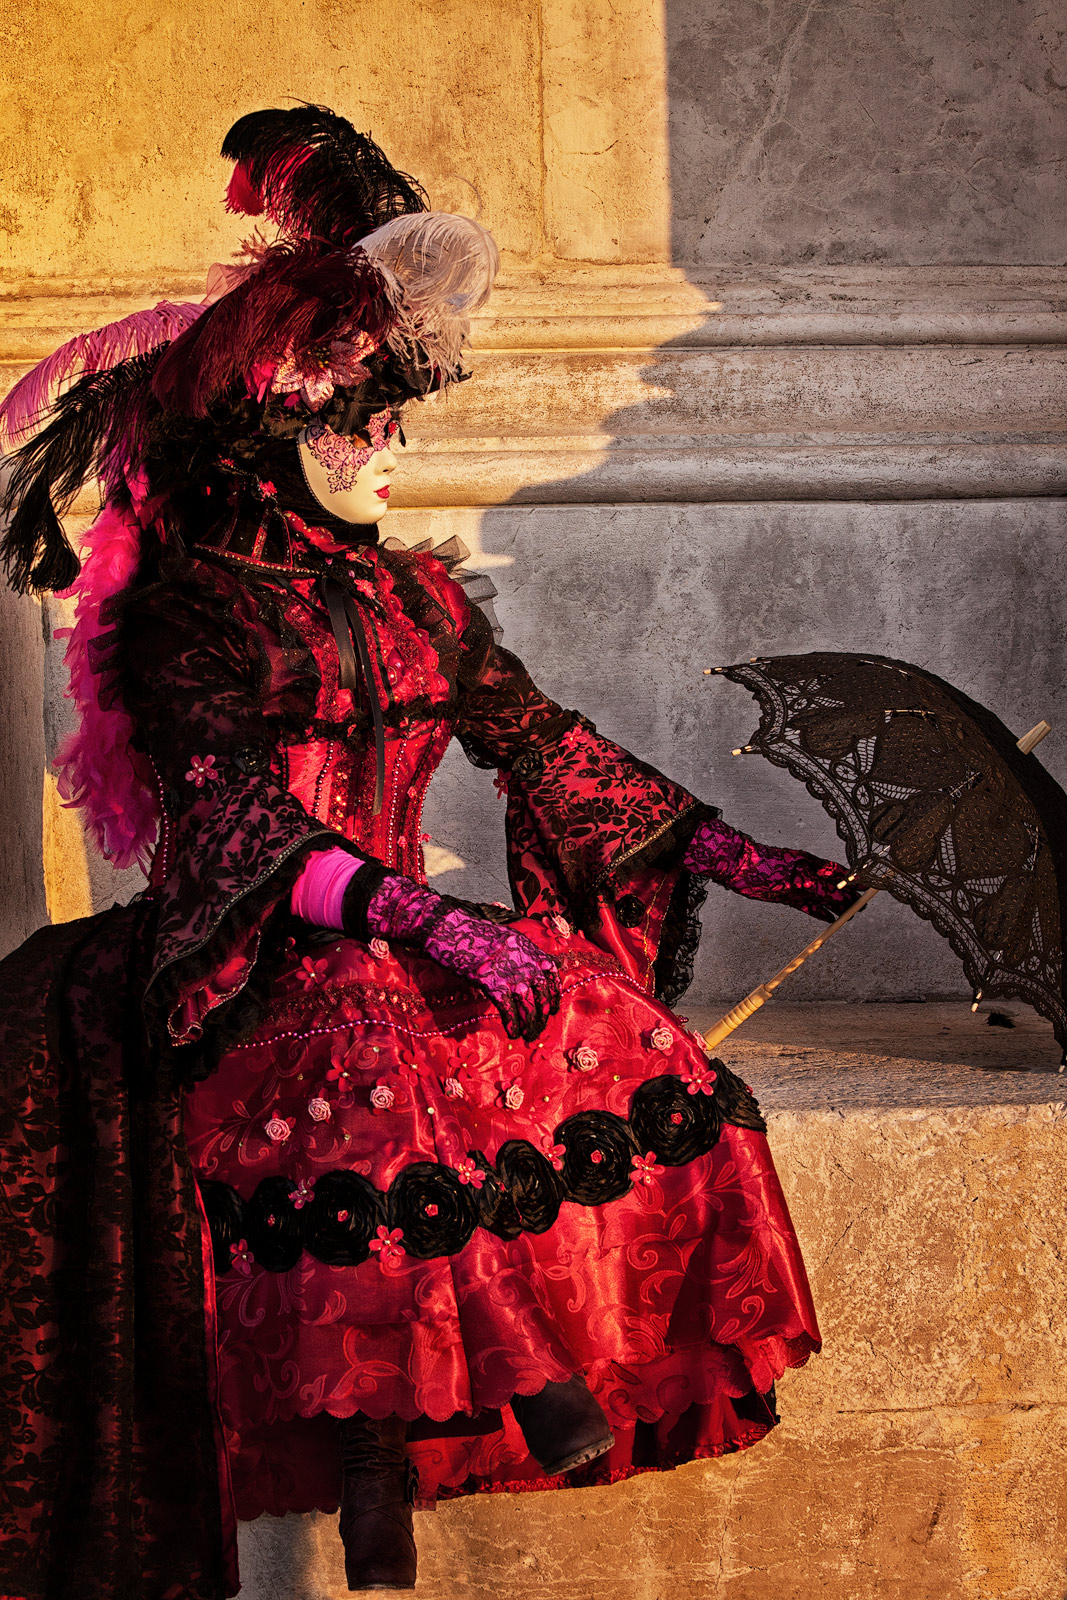 carnival, celebration, colorful, costume, europe, italy, mask, party, red, san gorgio, umbrella, venice, vertical, photo